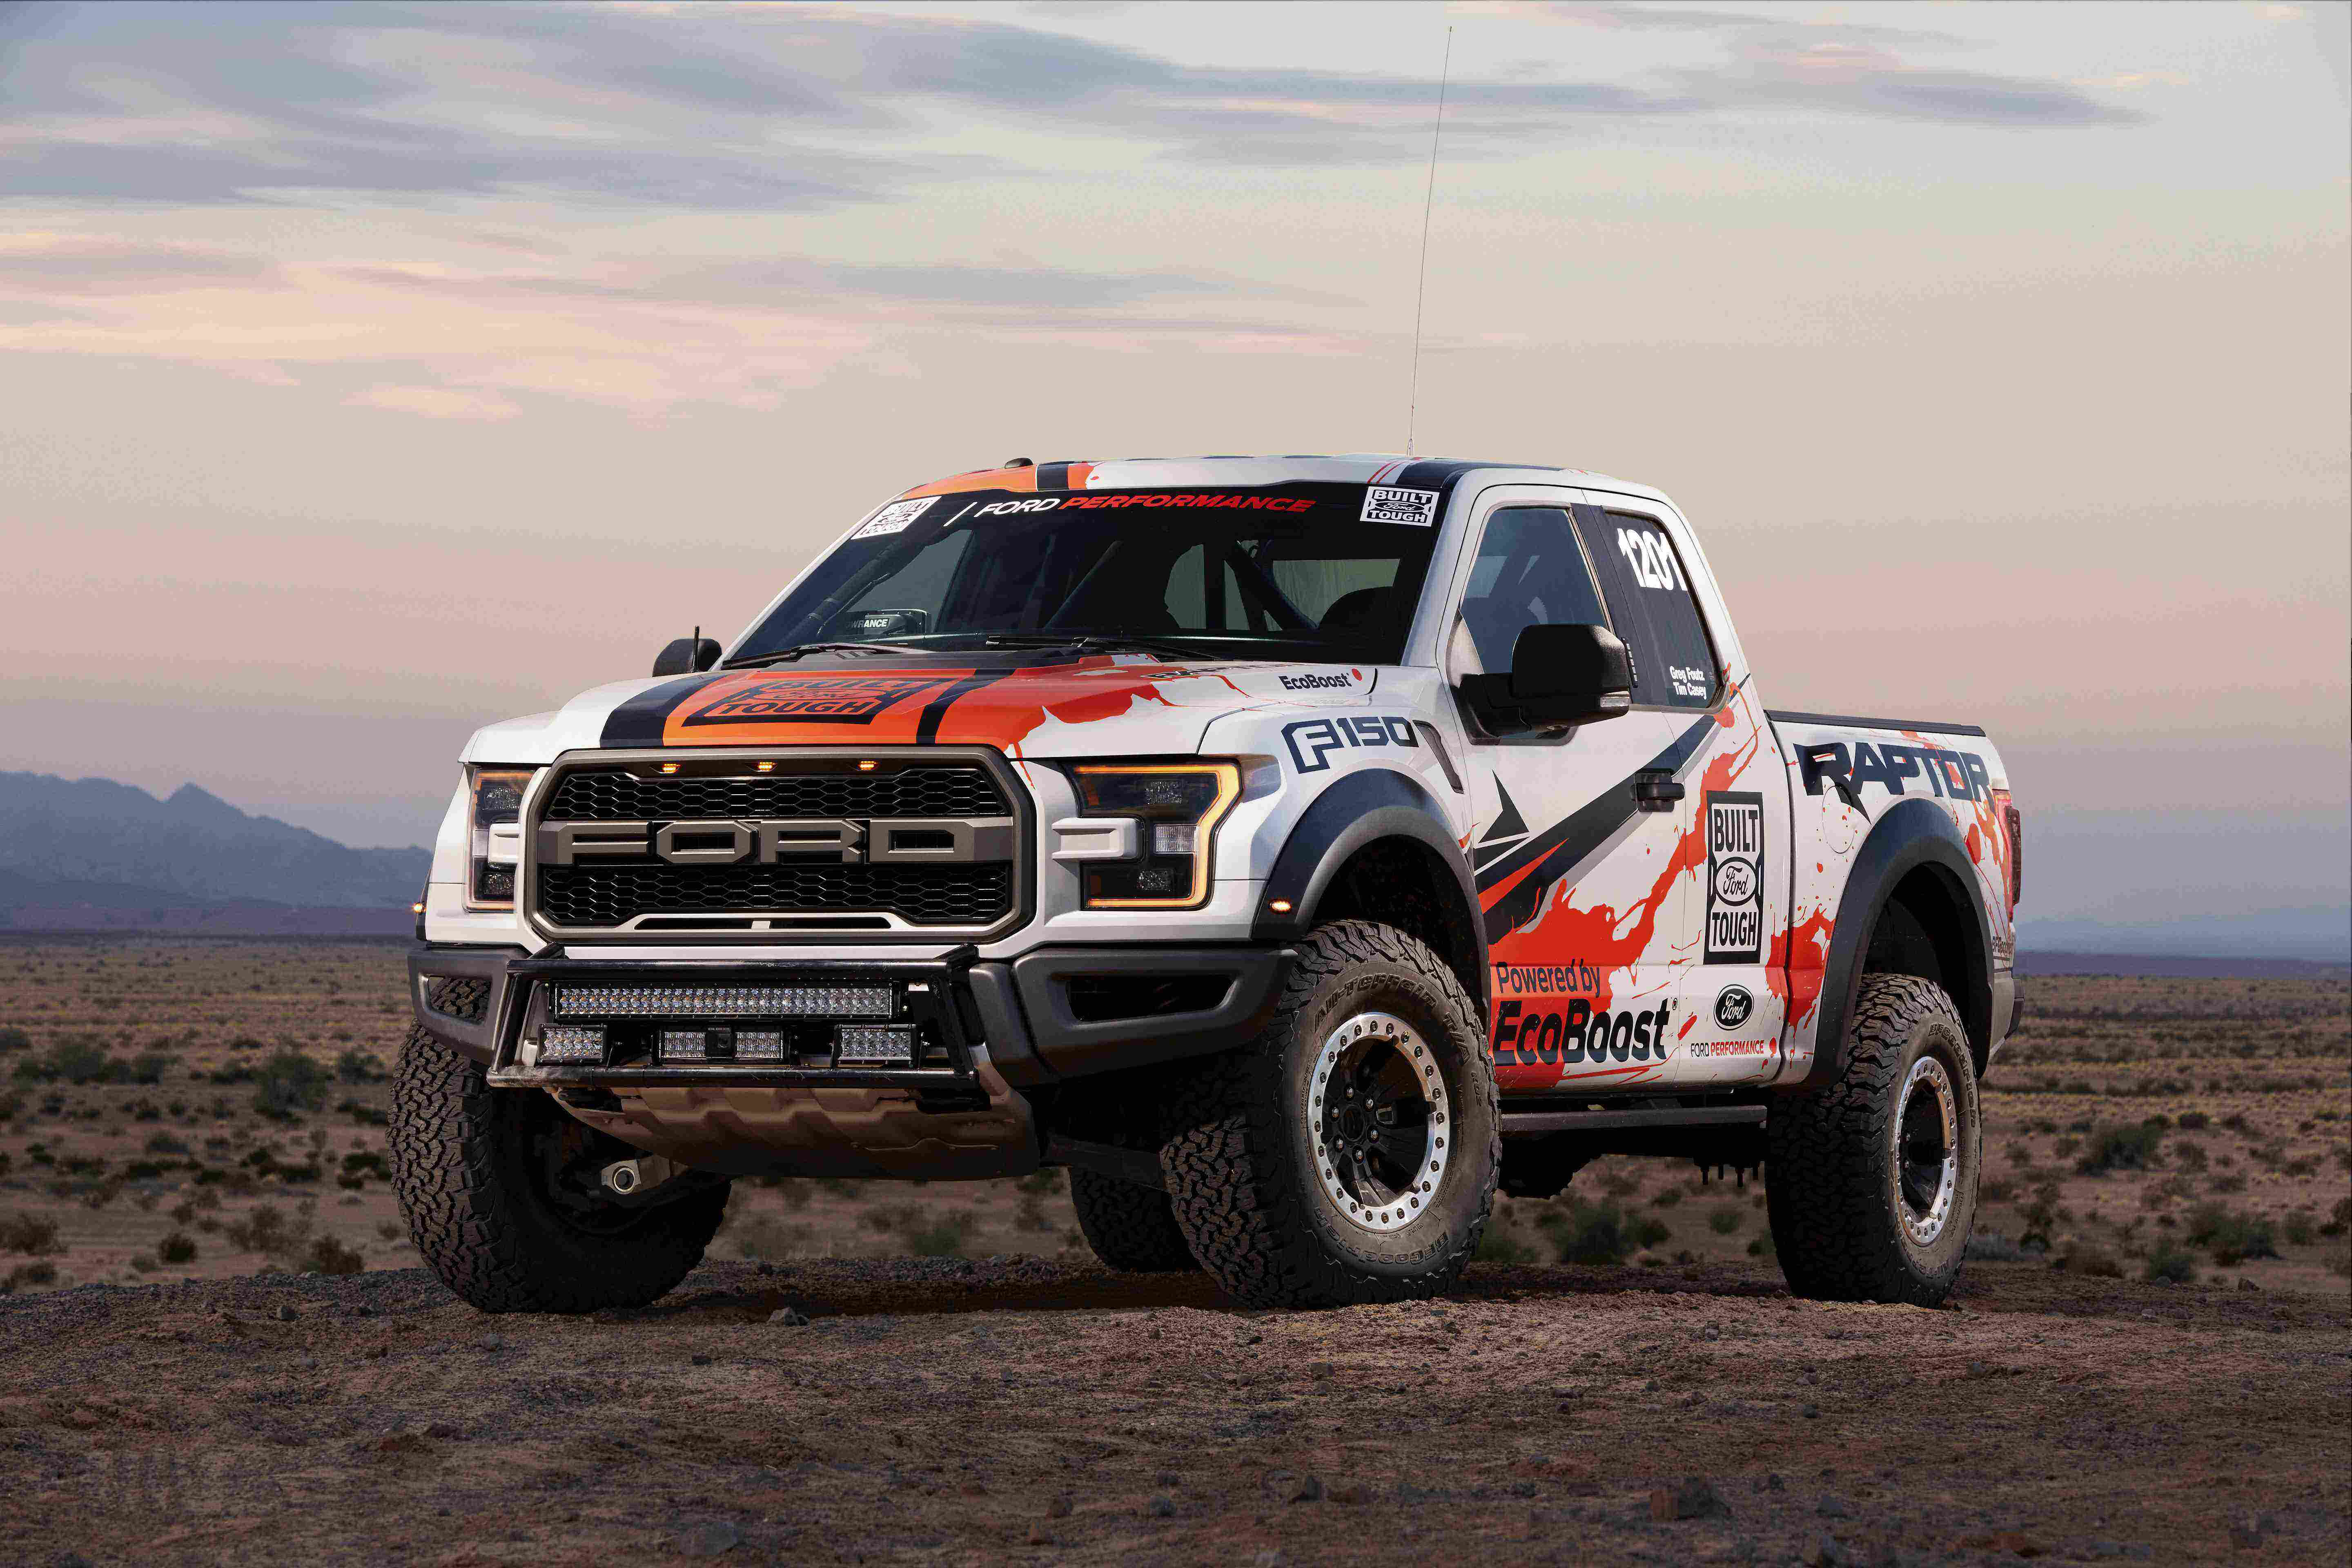 Ford Announced Today That Its 2017 F 150 Raptor Will Be Entering The Score Baja 1000 Off Road Race Scheduled For Mid November In Mexico